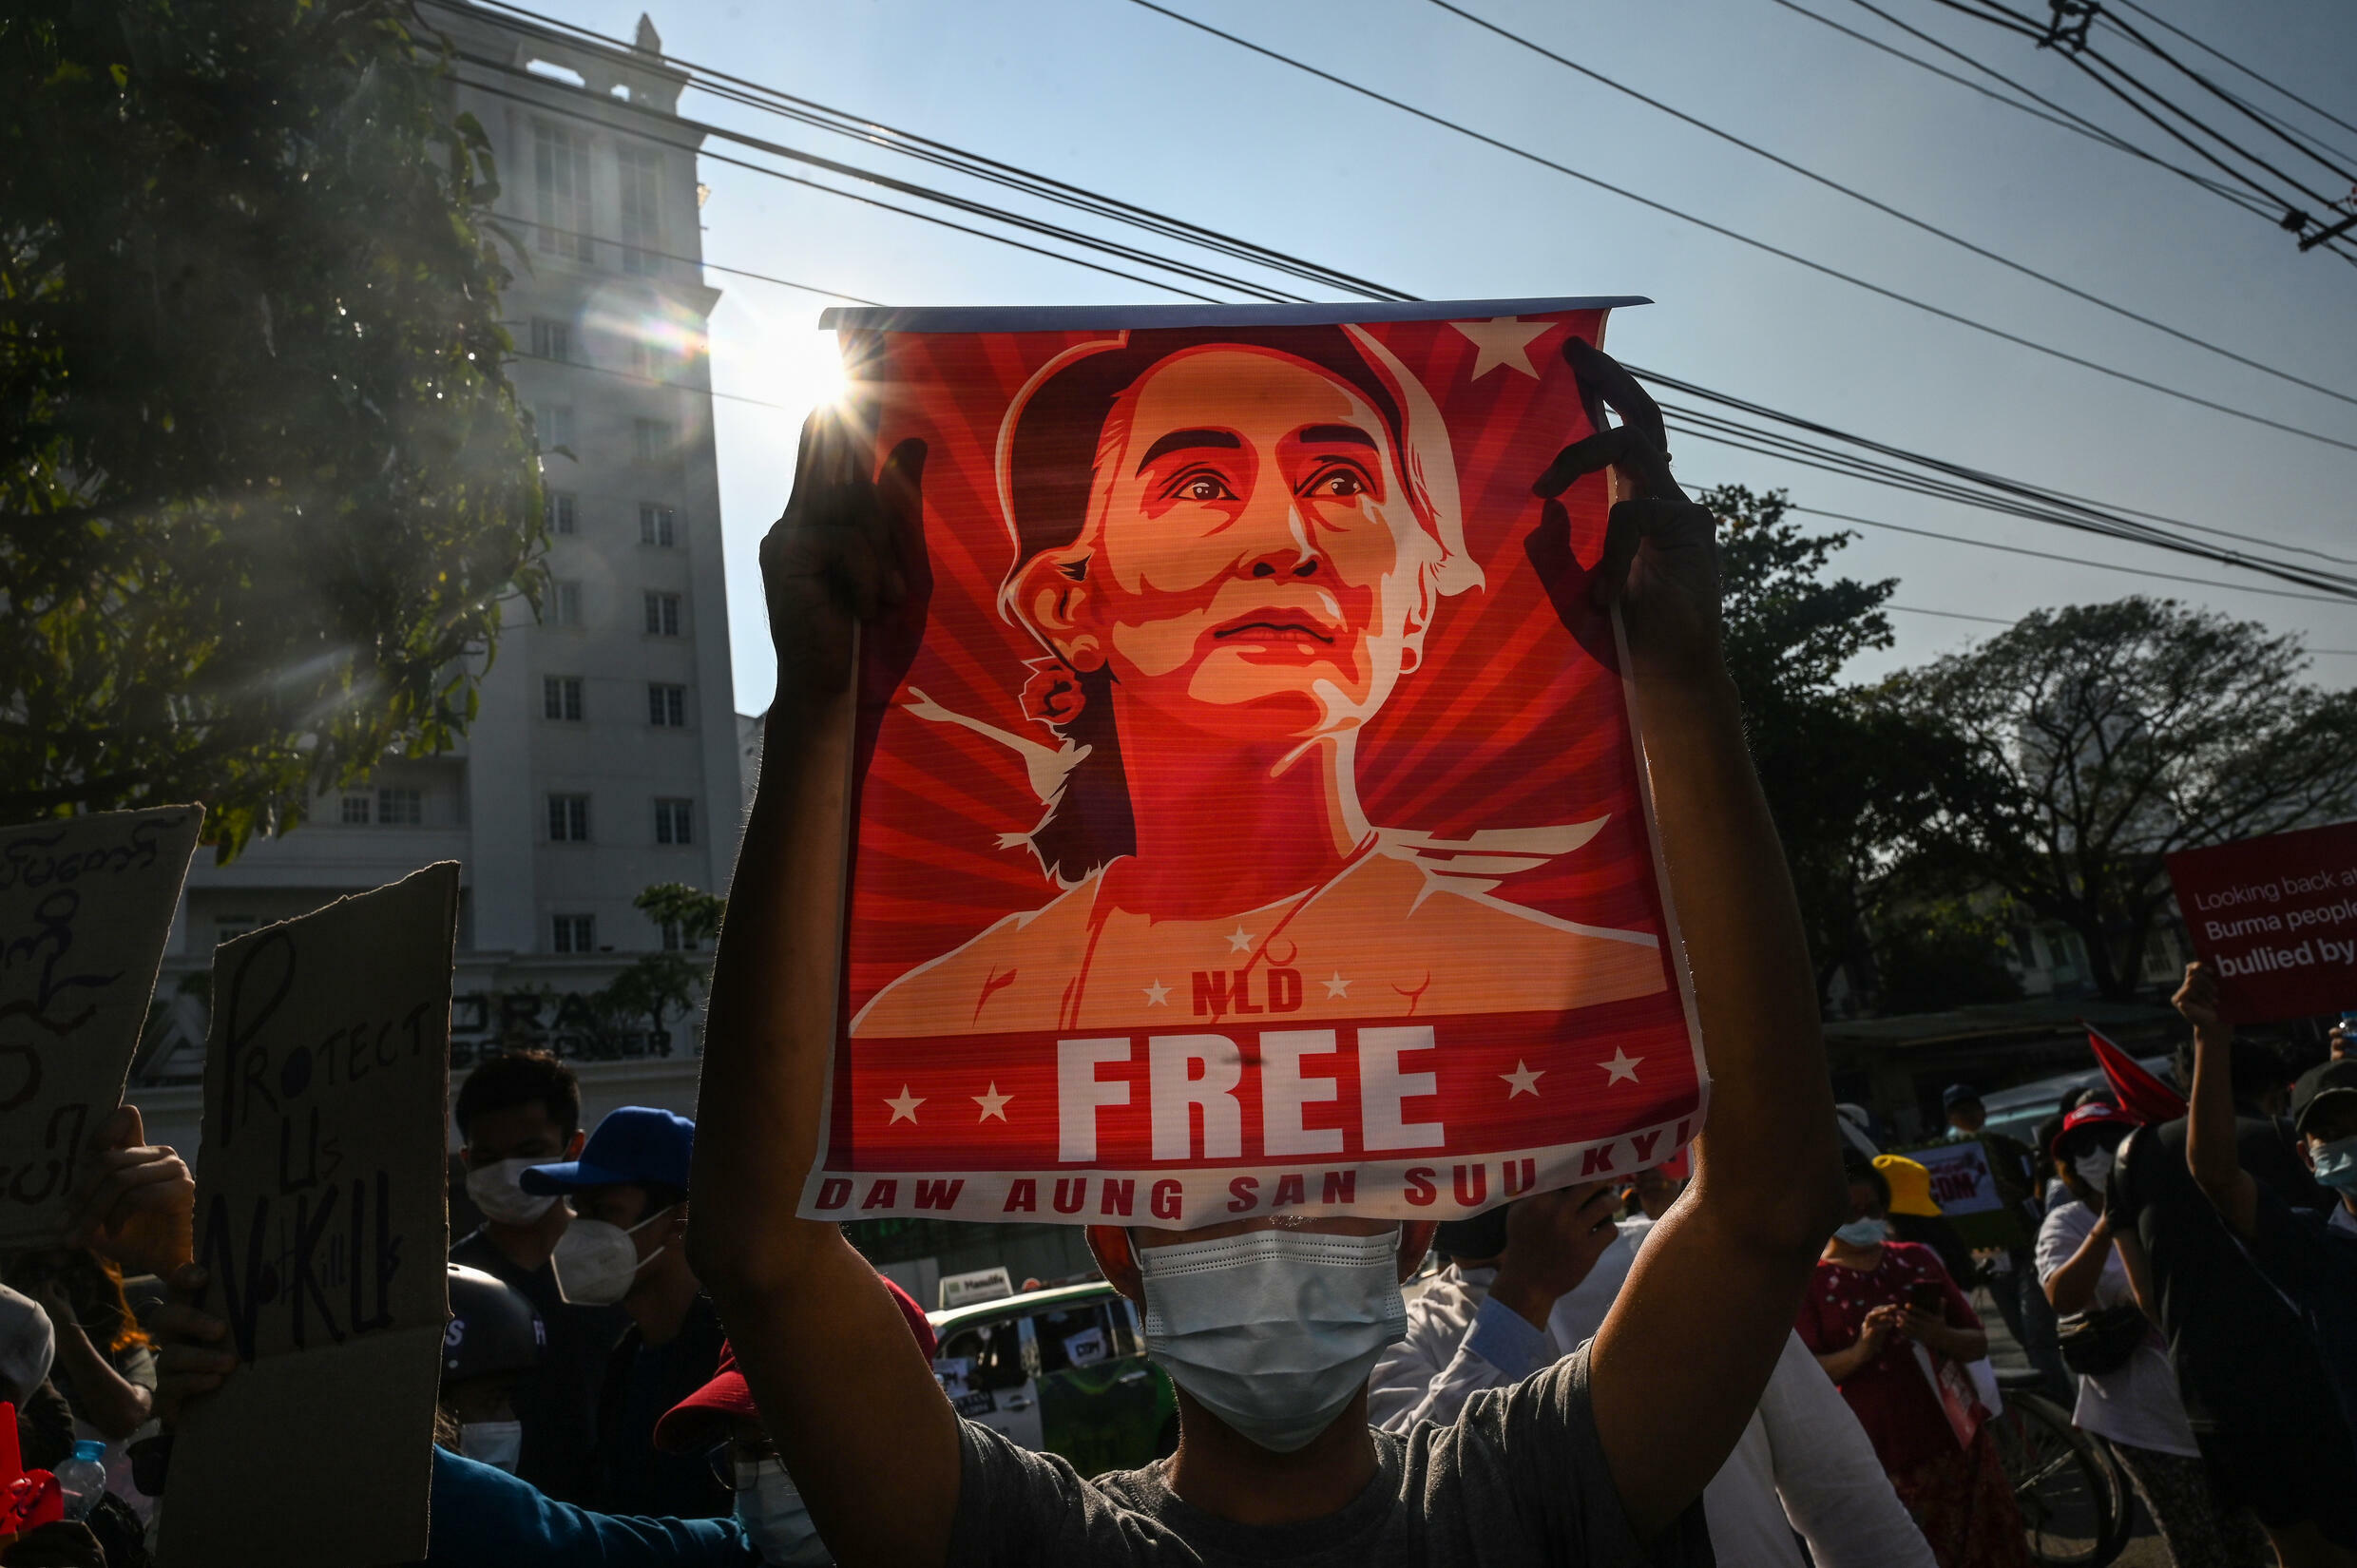 Myanmar has been in turmoil since Aung San Suu Kyi and her elected government were ousted in a military coup